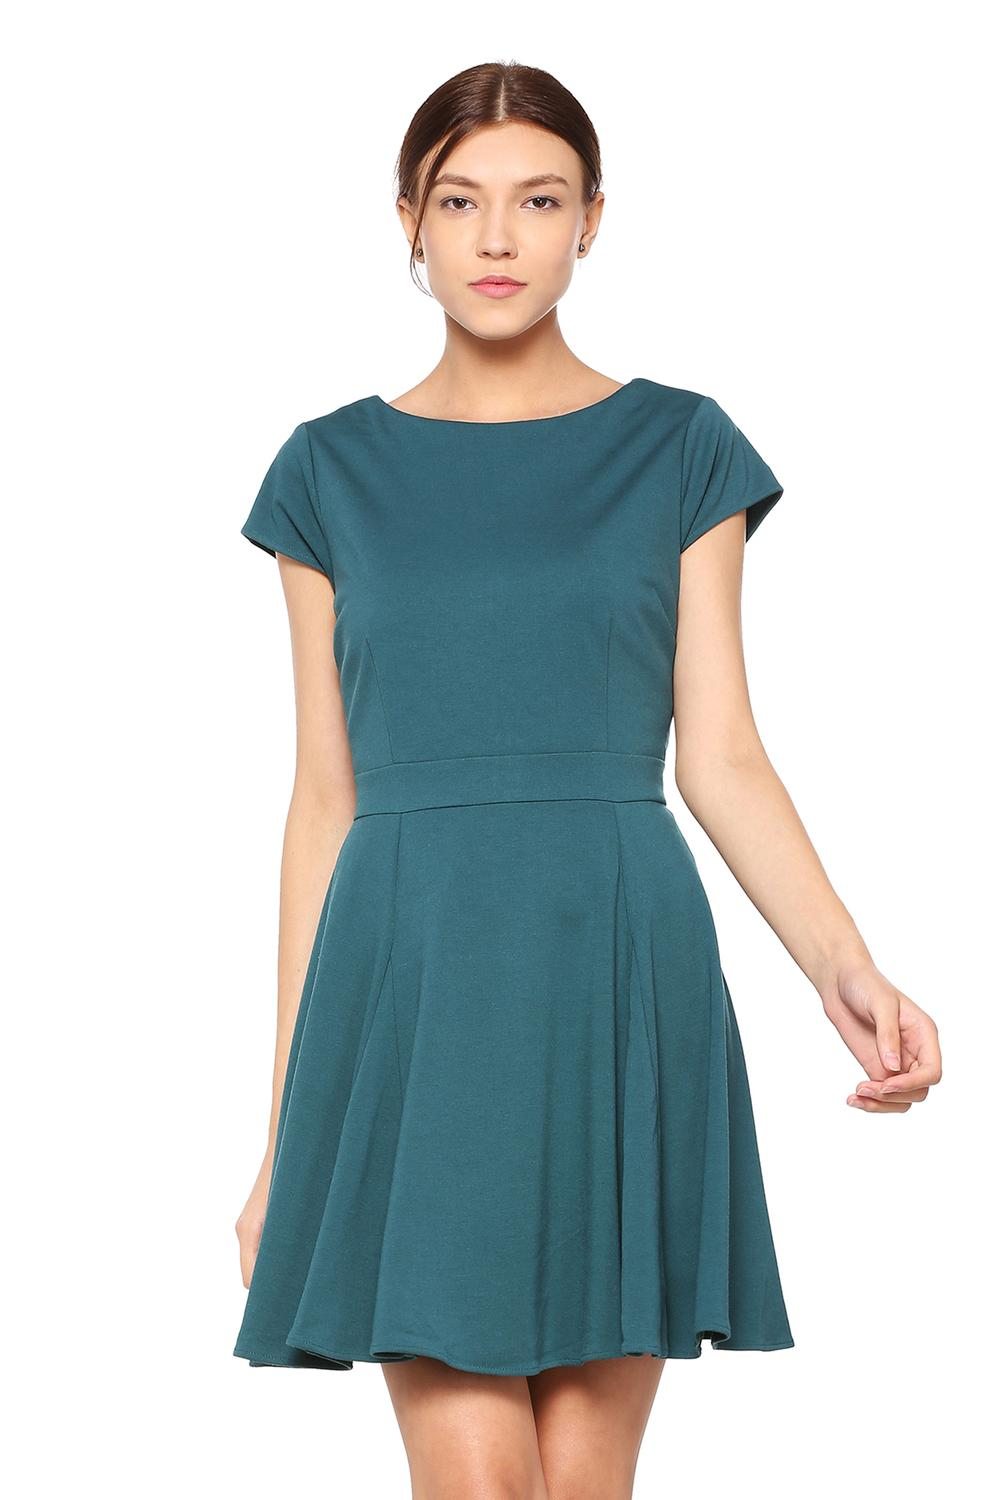 97a691c6a9f3 Solly Dresses, Allen Solly Green Dress for Women at Allensolly.com